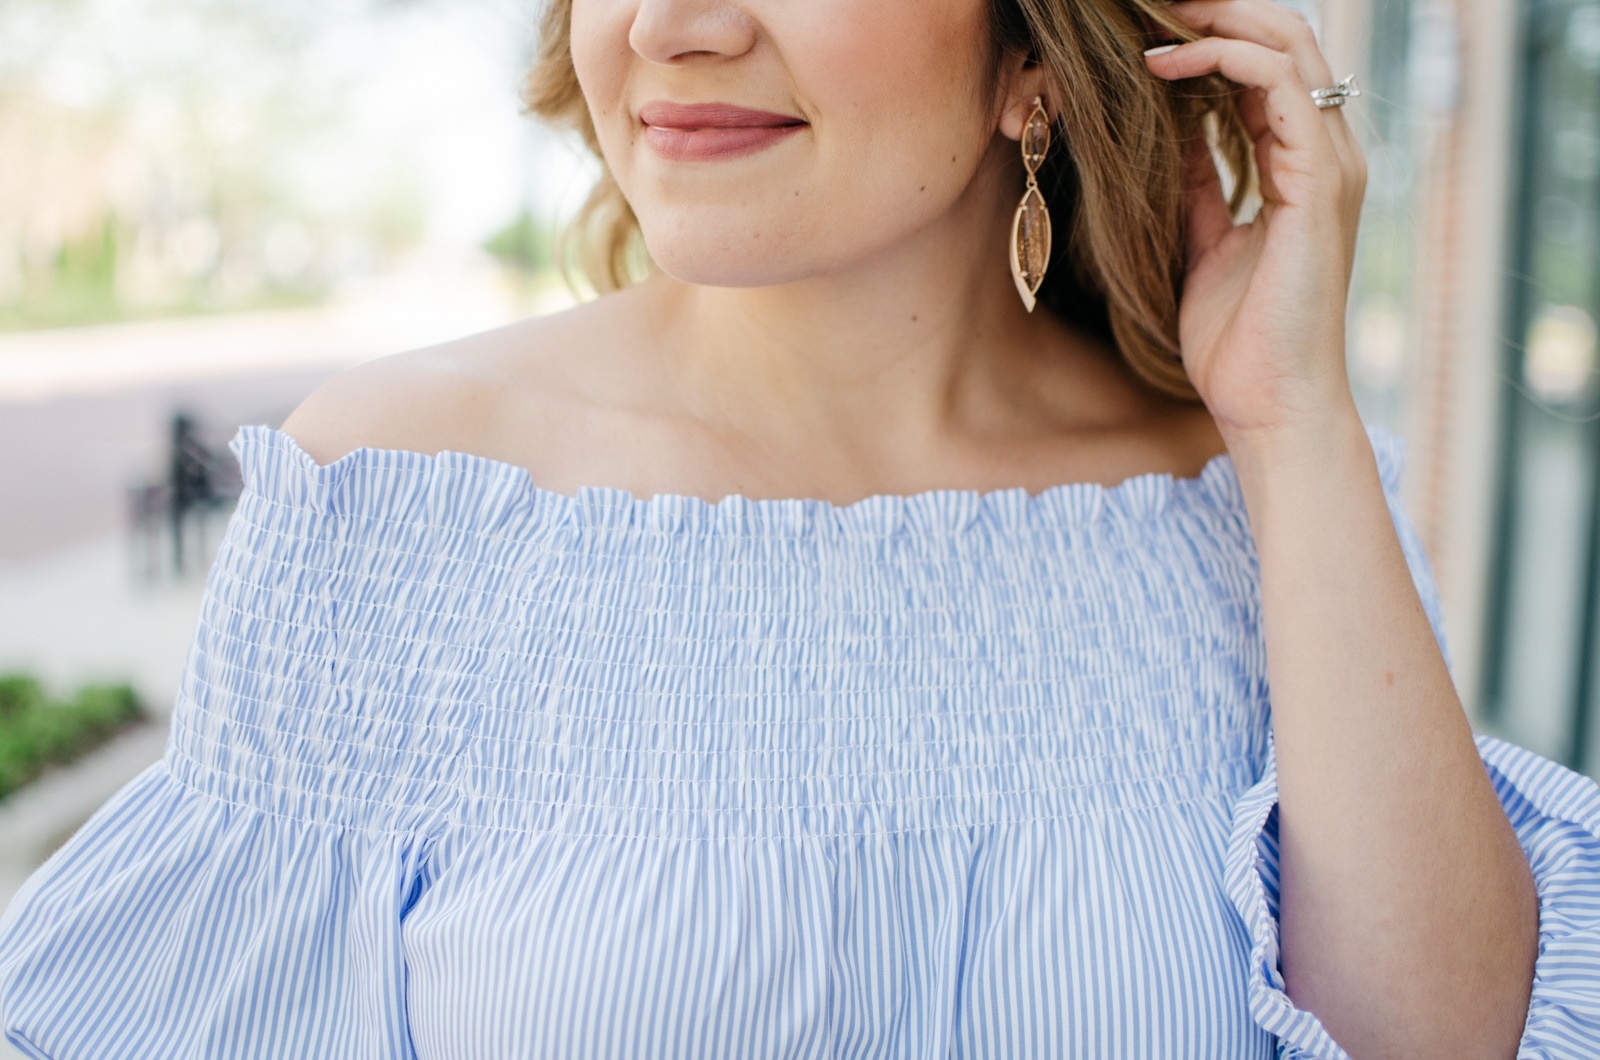 kendra scott earrings | Want more Spring outfit inspiration? Head to bylaurenm.com!